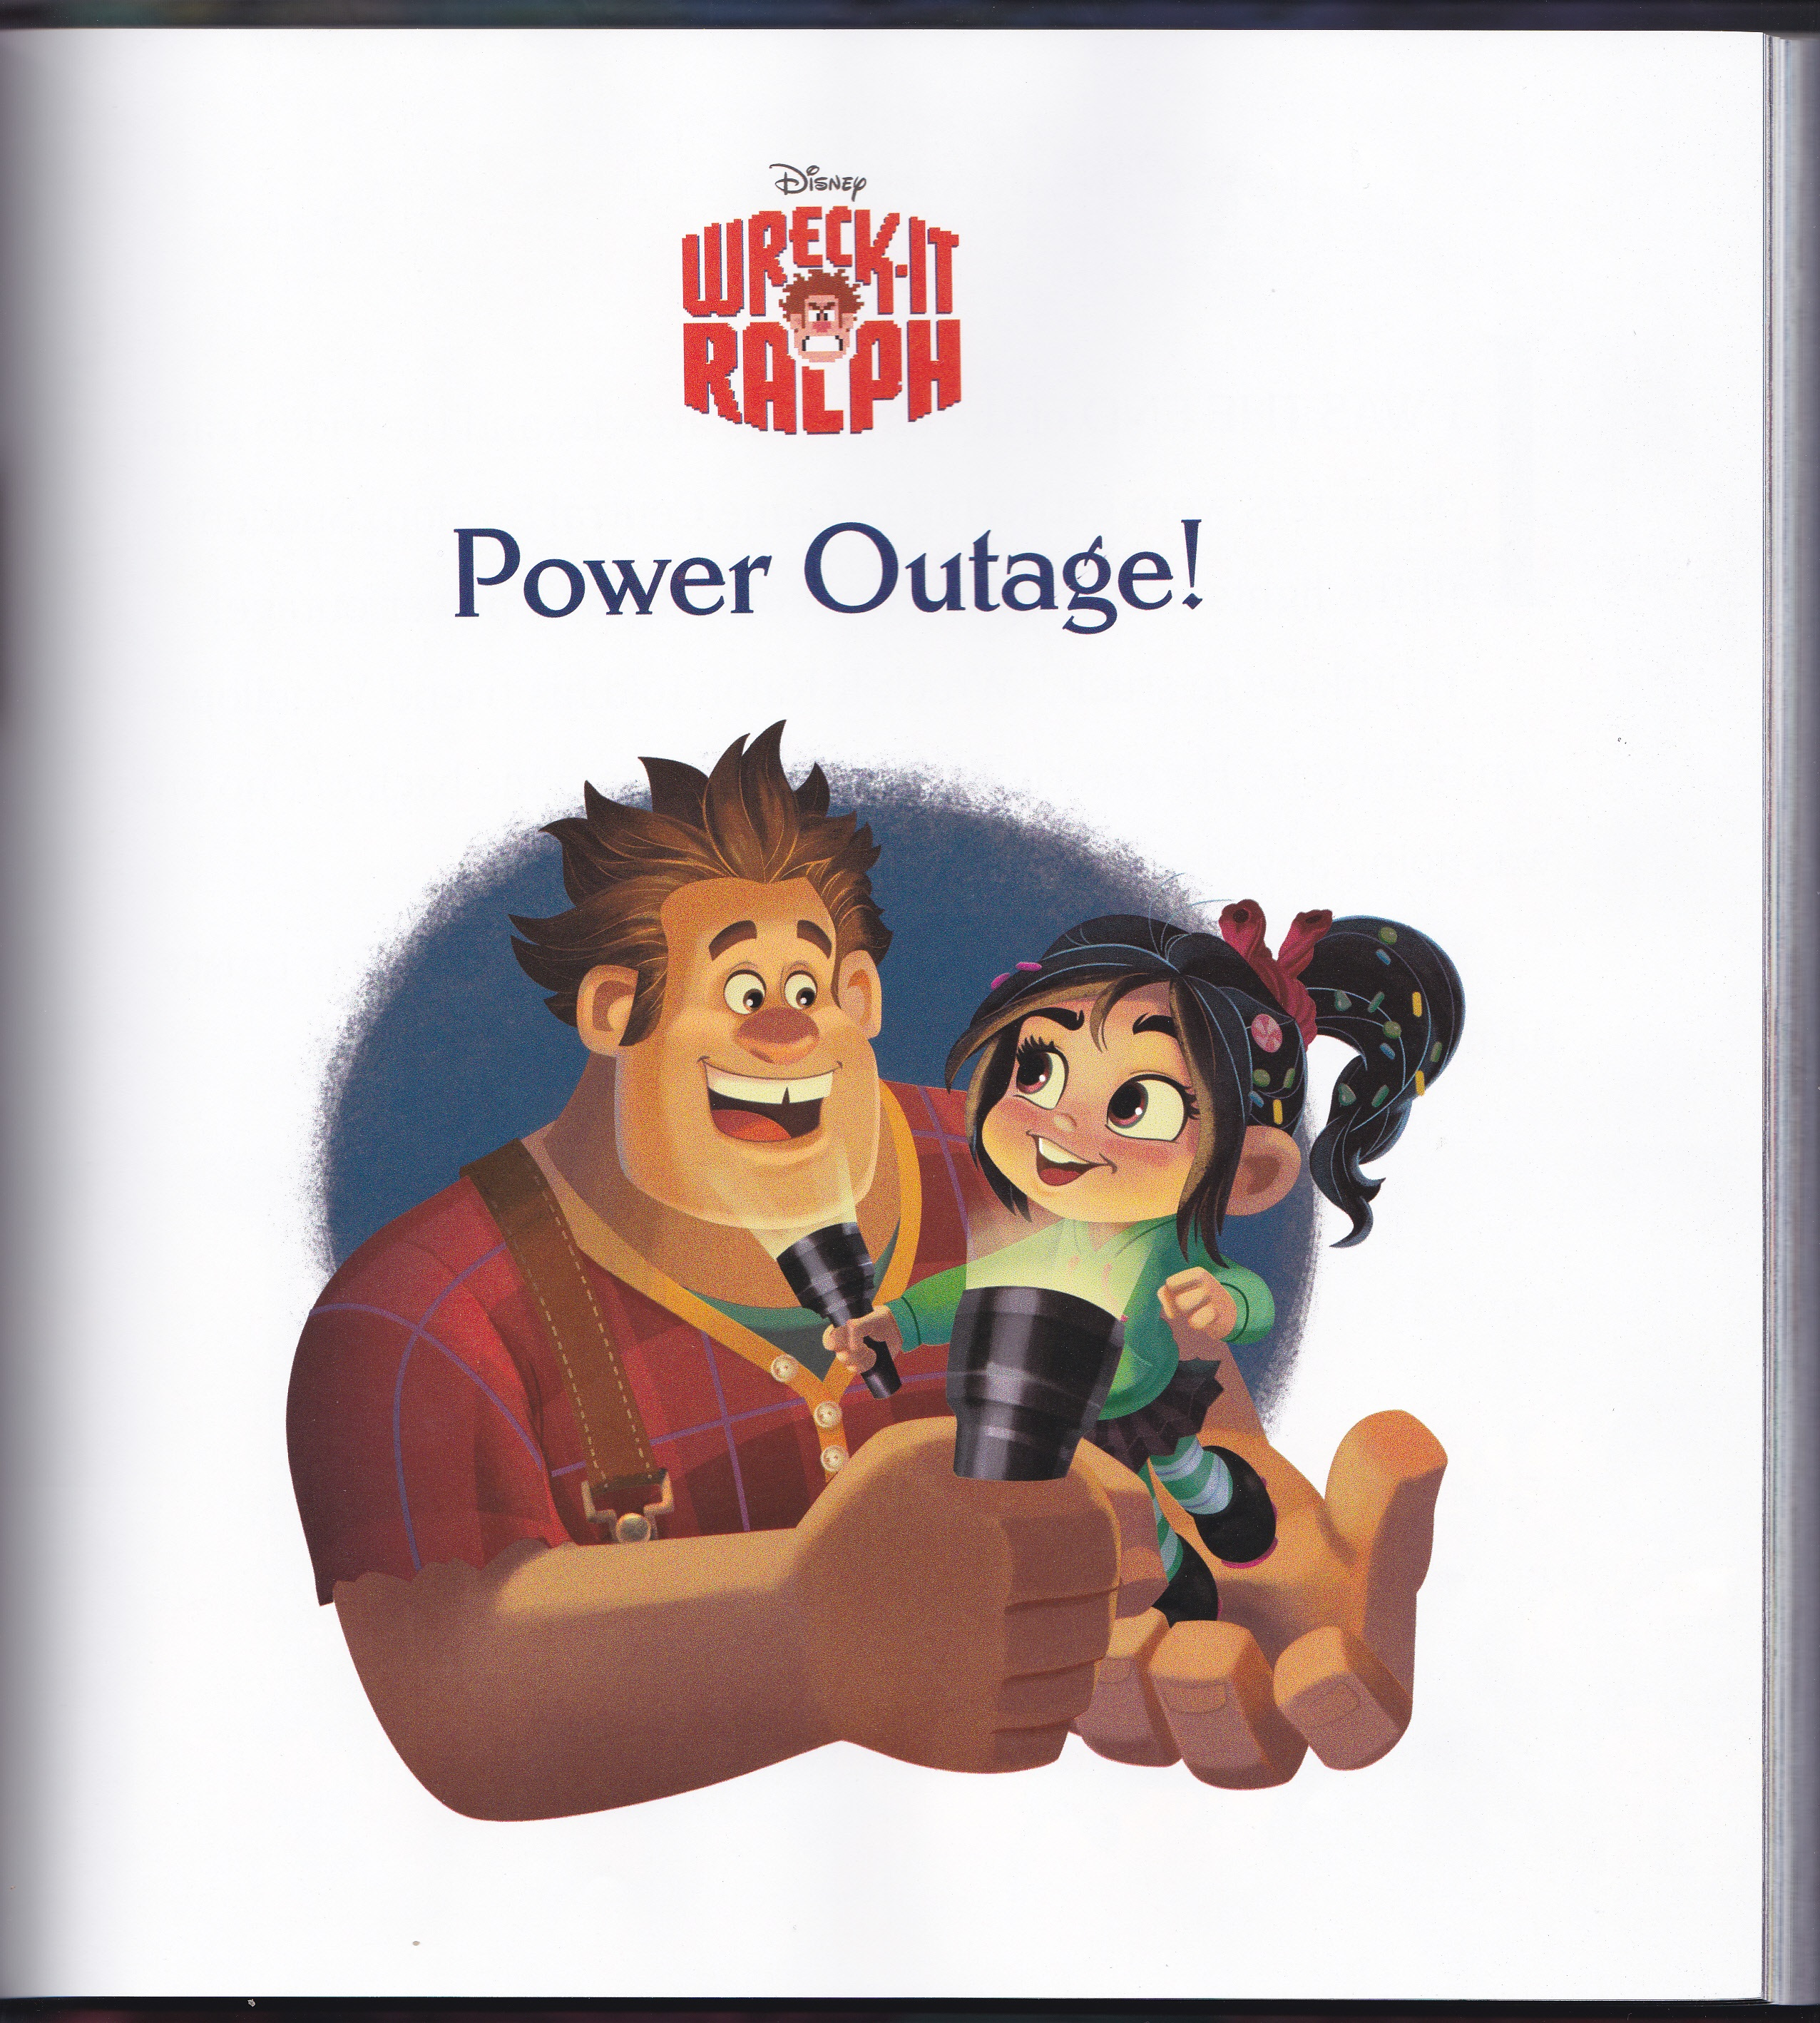 Power Outage!